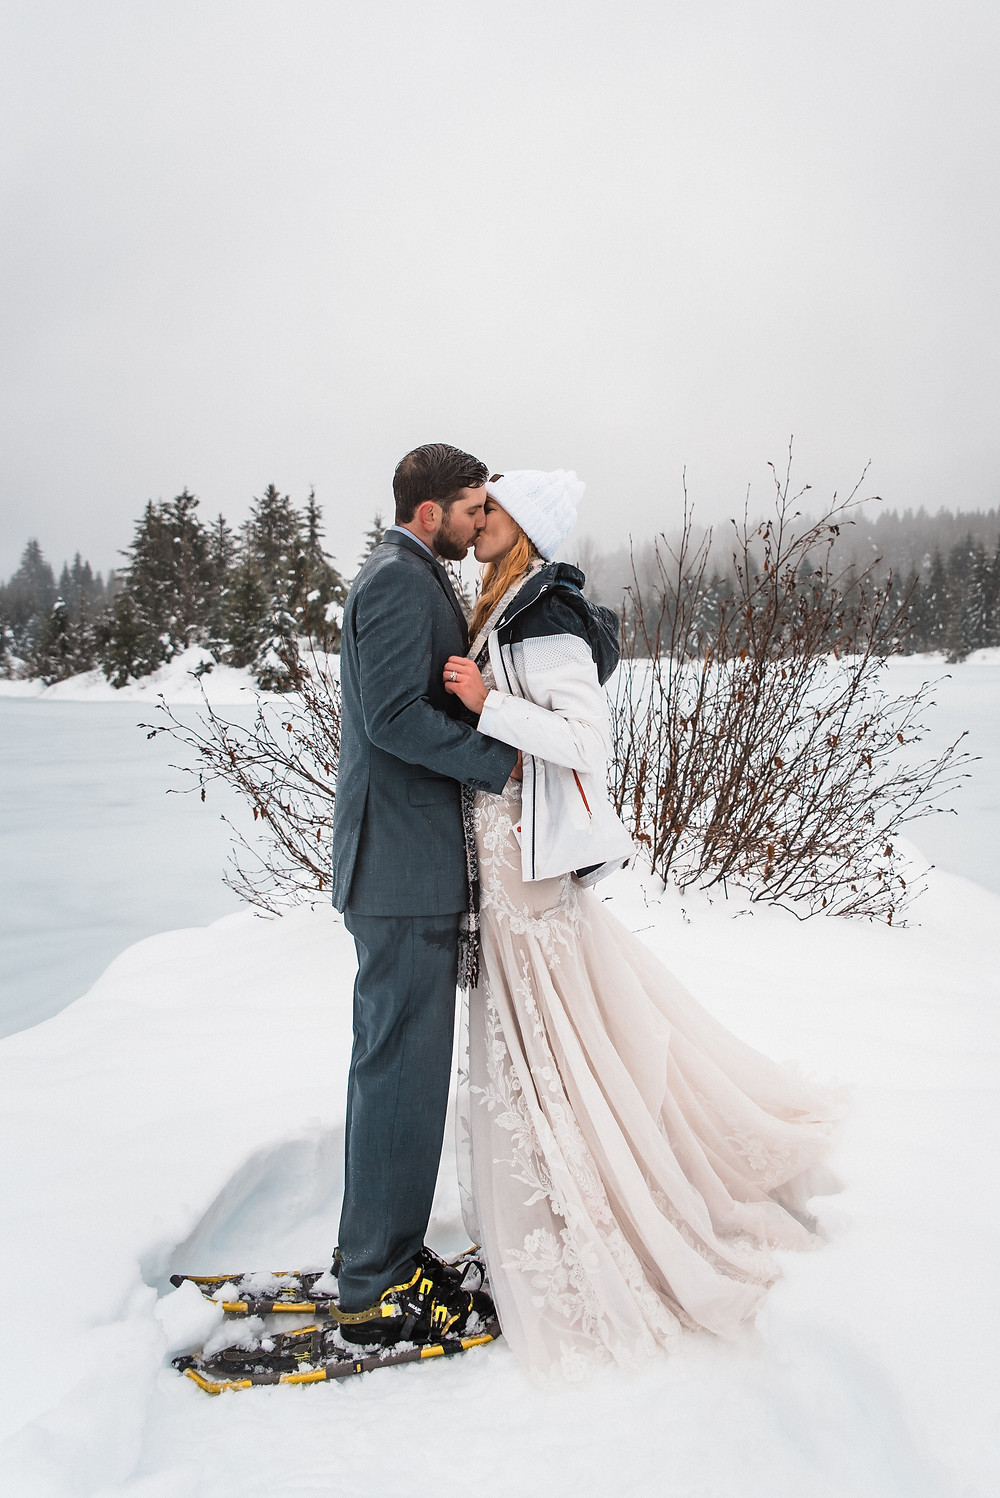 A couple kissing after getting married during their snowy elopement in Washington